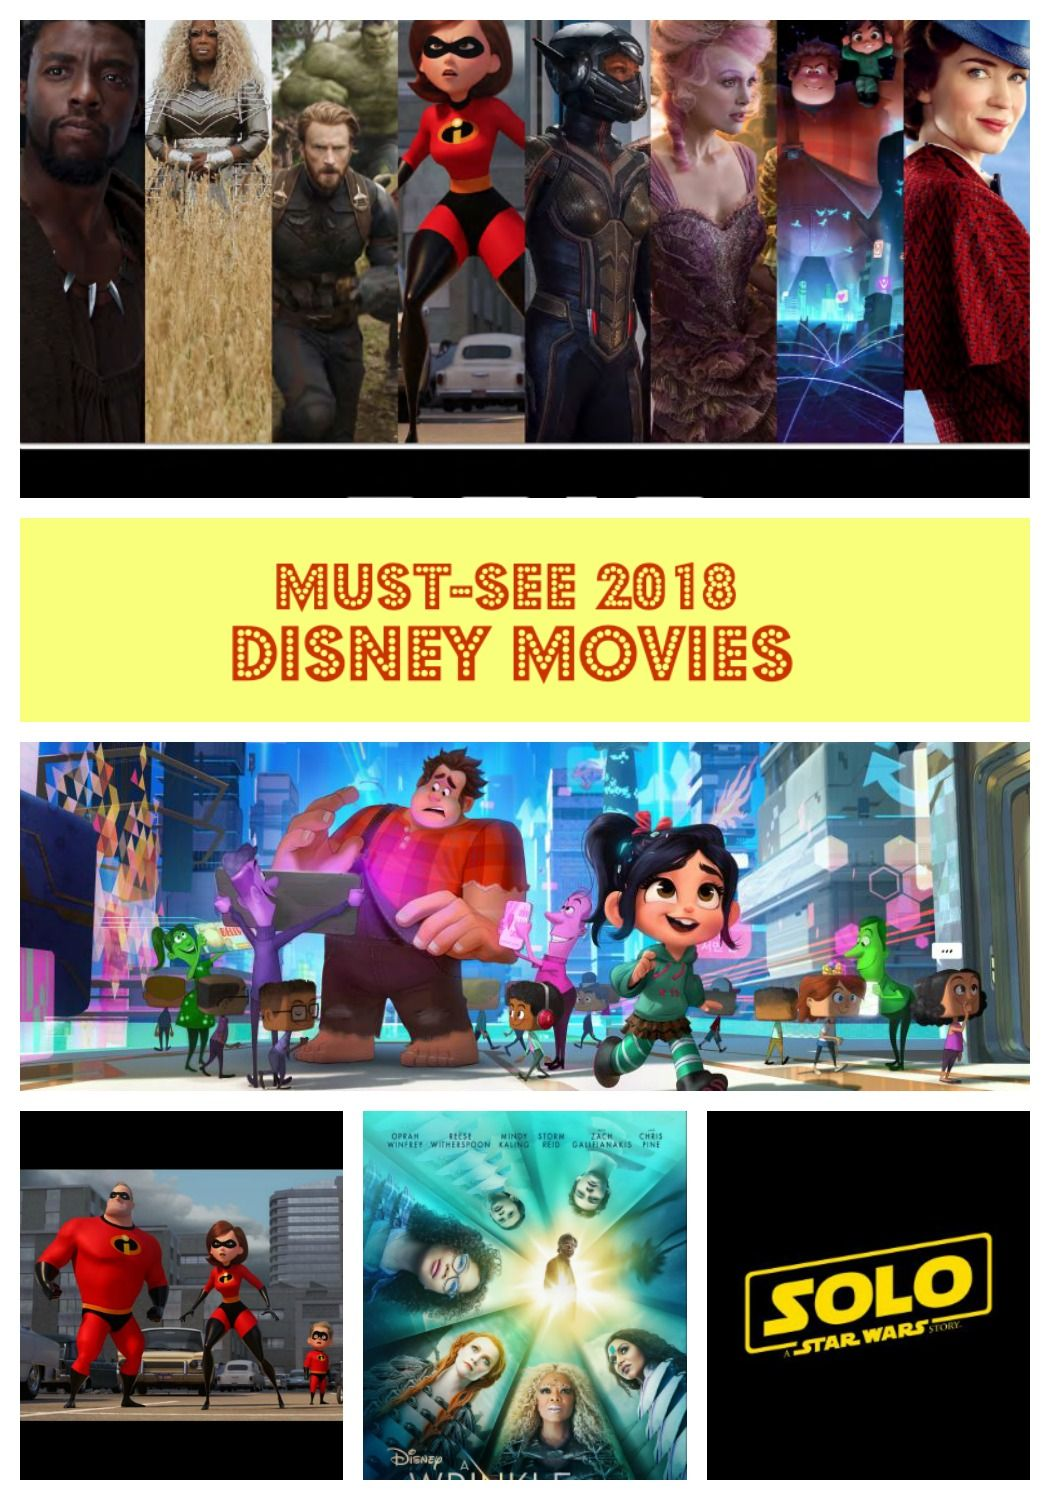 Don't Miss these Disney Movies Opening in 2018 Disney